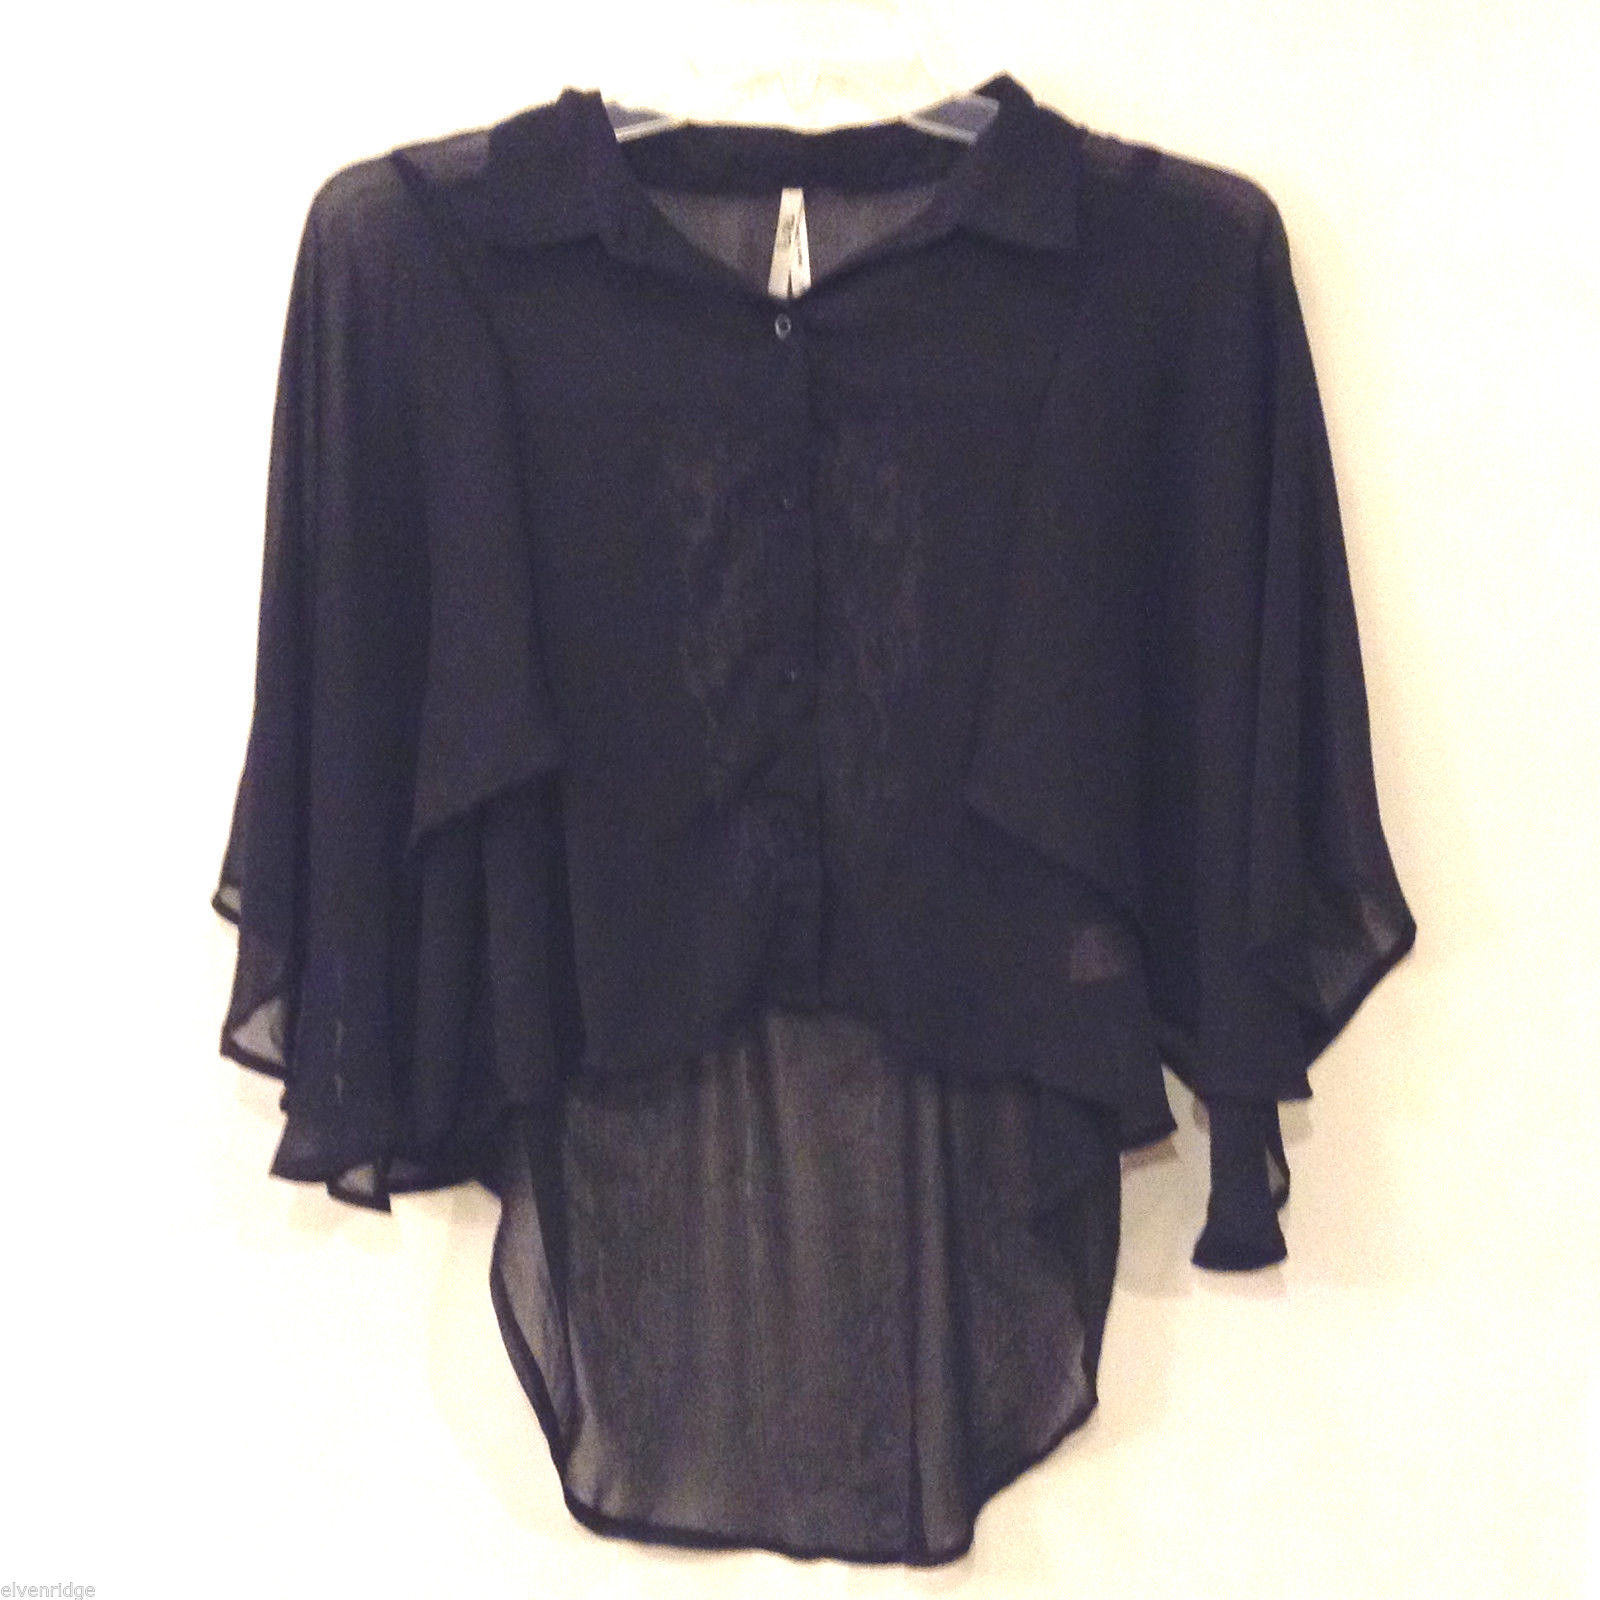 Truth NYC Women's M Sheer Black Blouse Top Dolman Sleeves Lace Panel High-Low